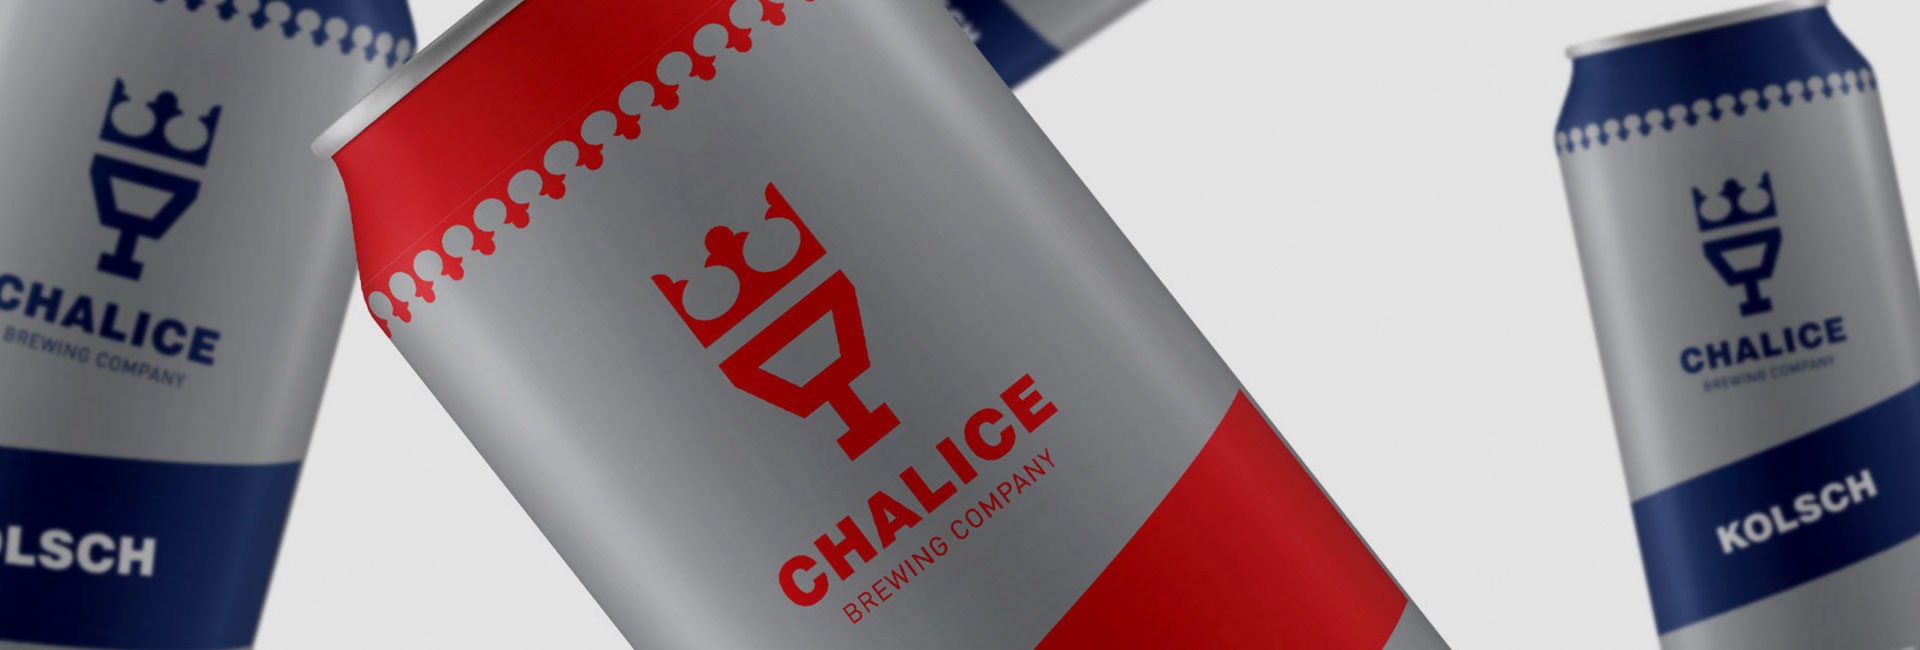 Read more about the article Packaging – Chalice beer